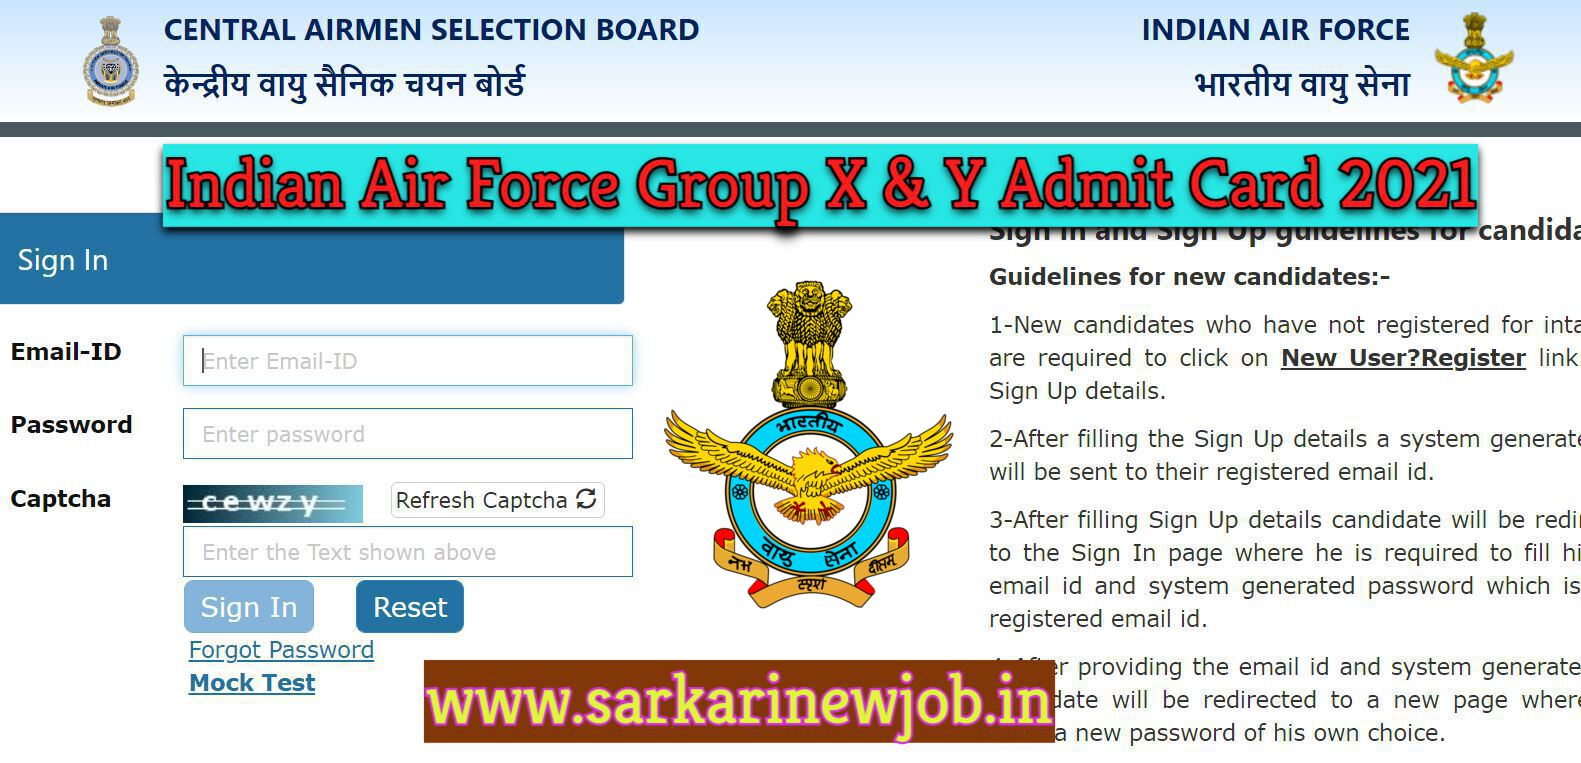 Indian Air Force Group X & Y Admit Card 2021 Kaise Dekhe Other Detail Of Indian Air Force Group X & Y Admit Card 2021 Kaise Dekhe, Join Indian Air Force 2021, Join Indian Air Force ,Air Force Exam Date 2021,